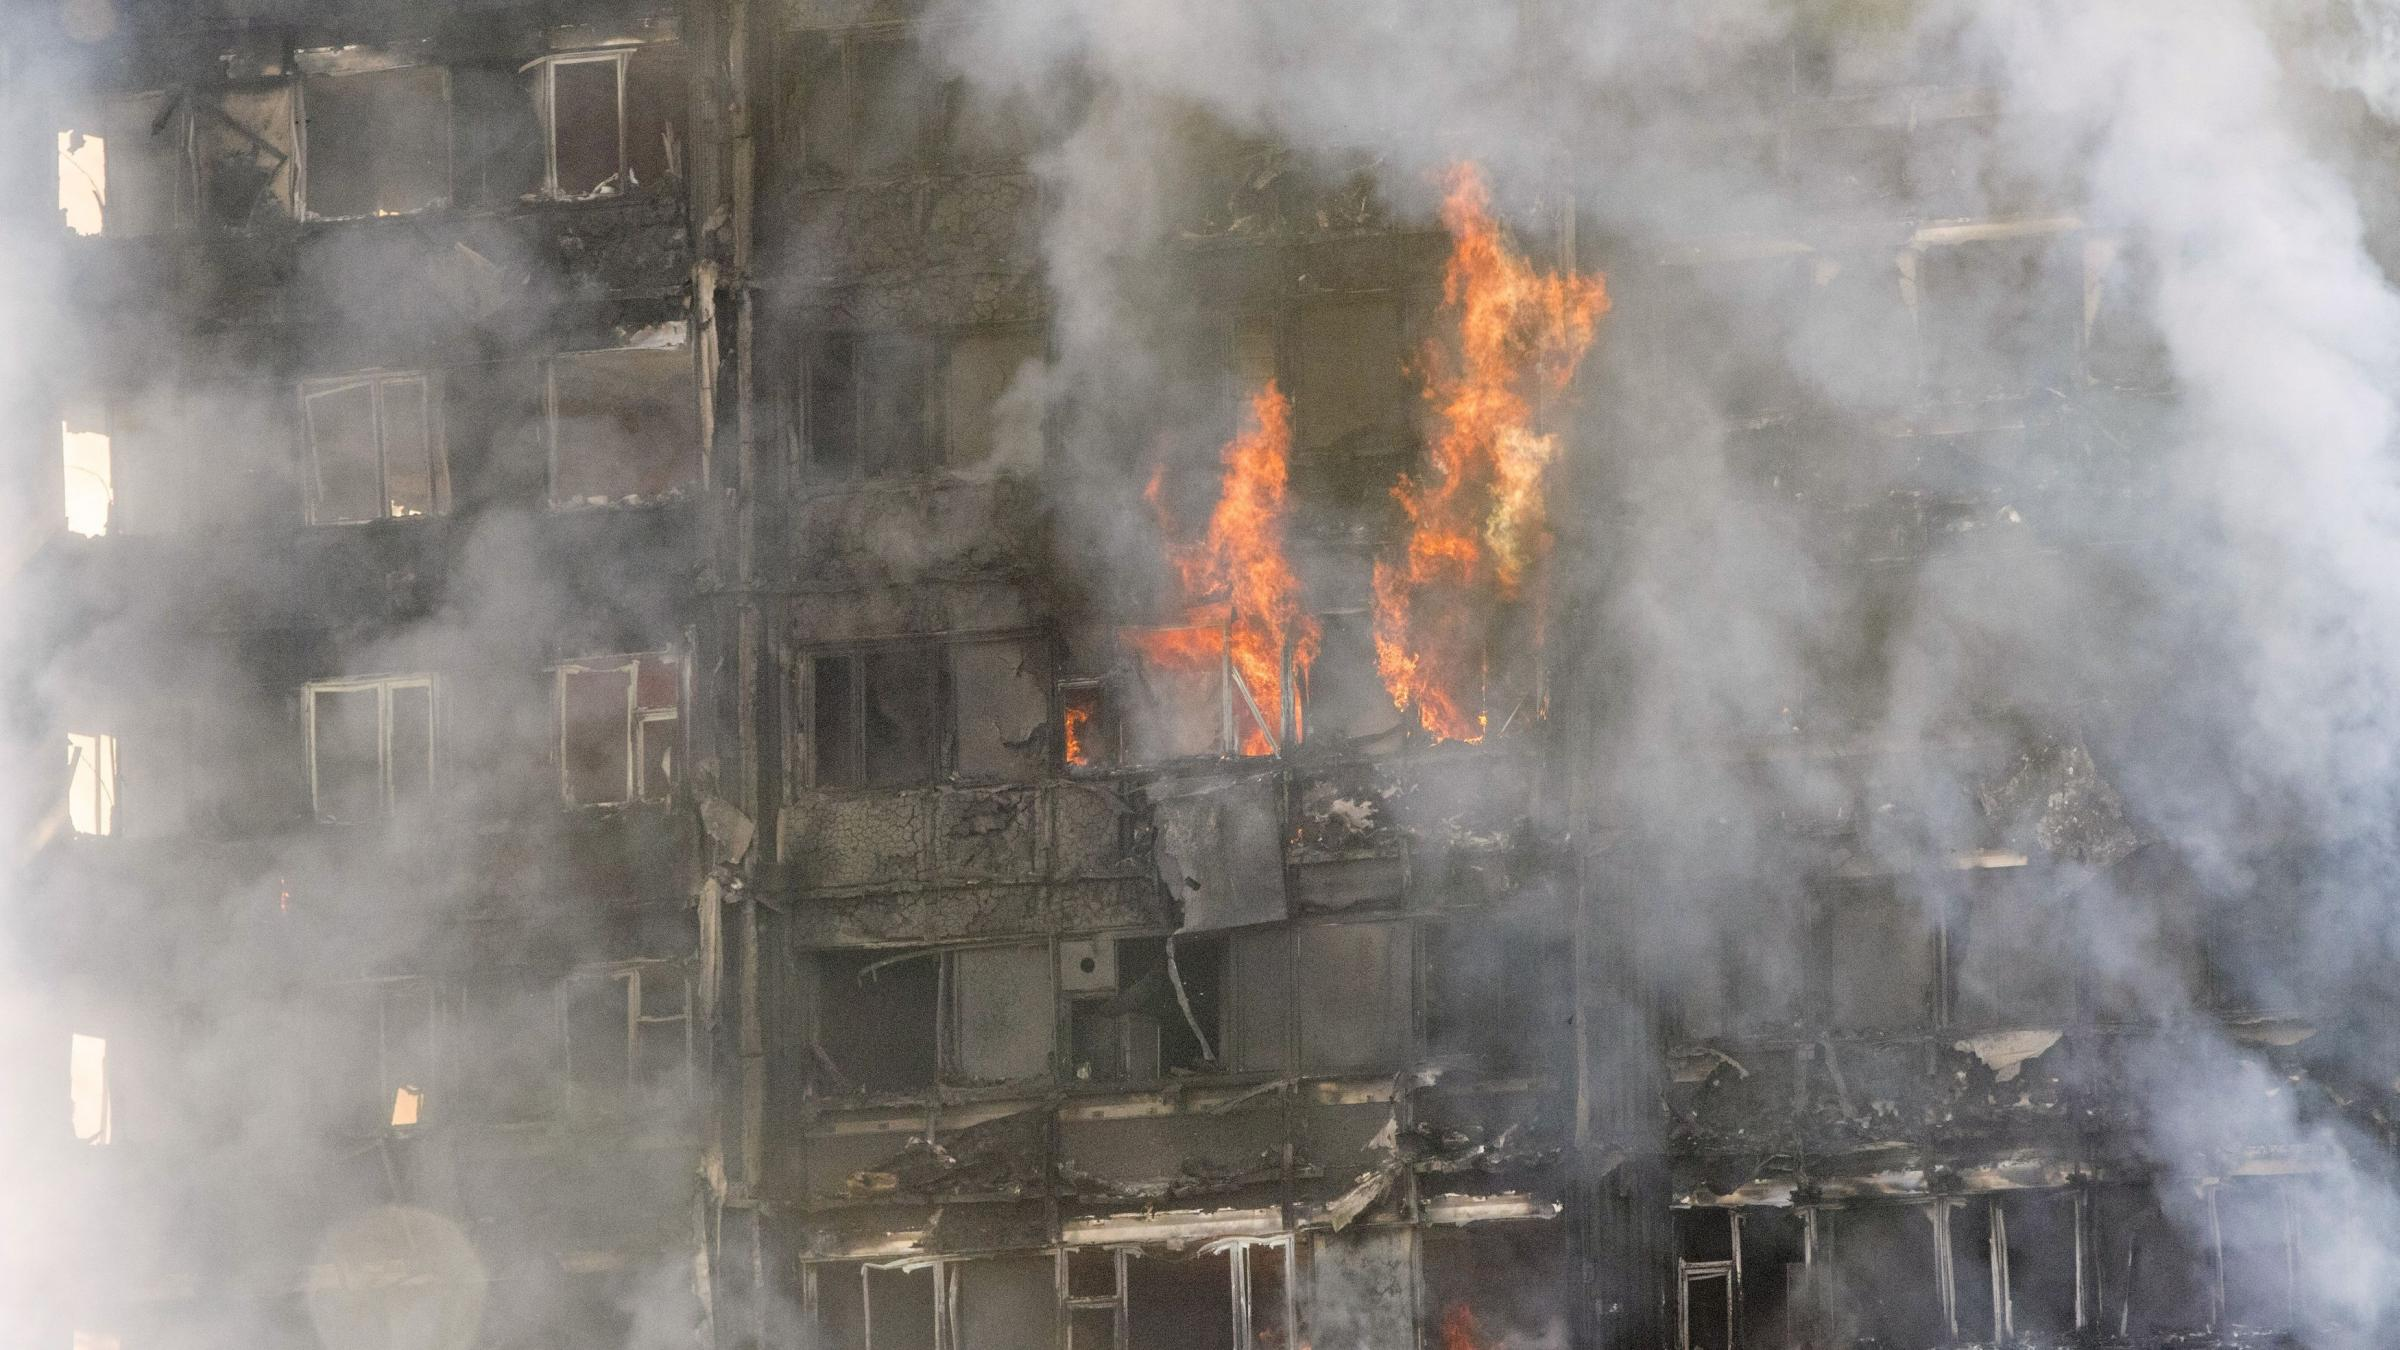 Apartment building engulfed in London with people reportedly trapped inside